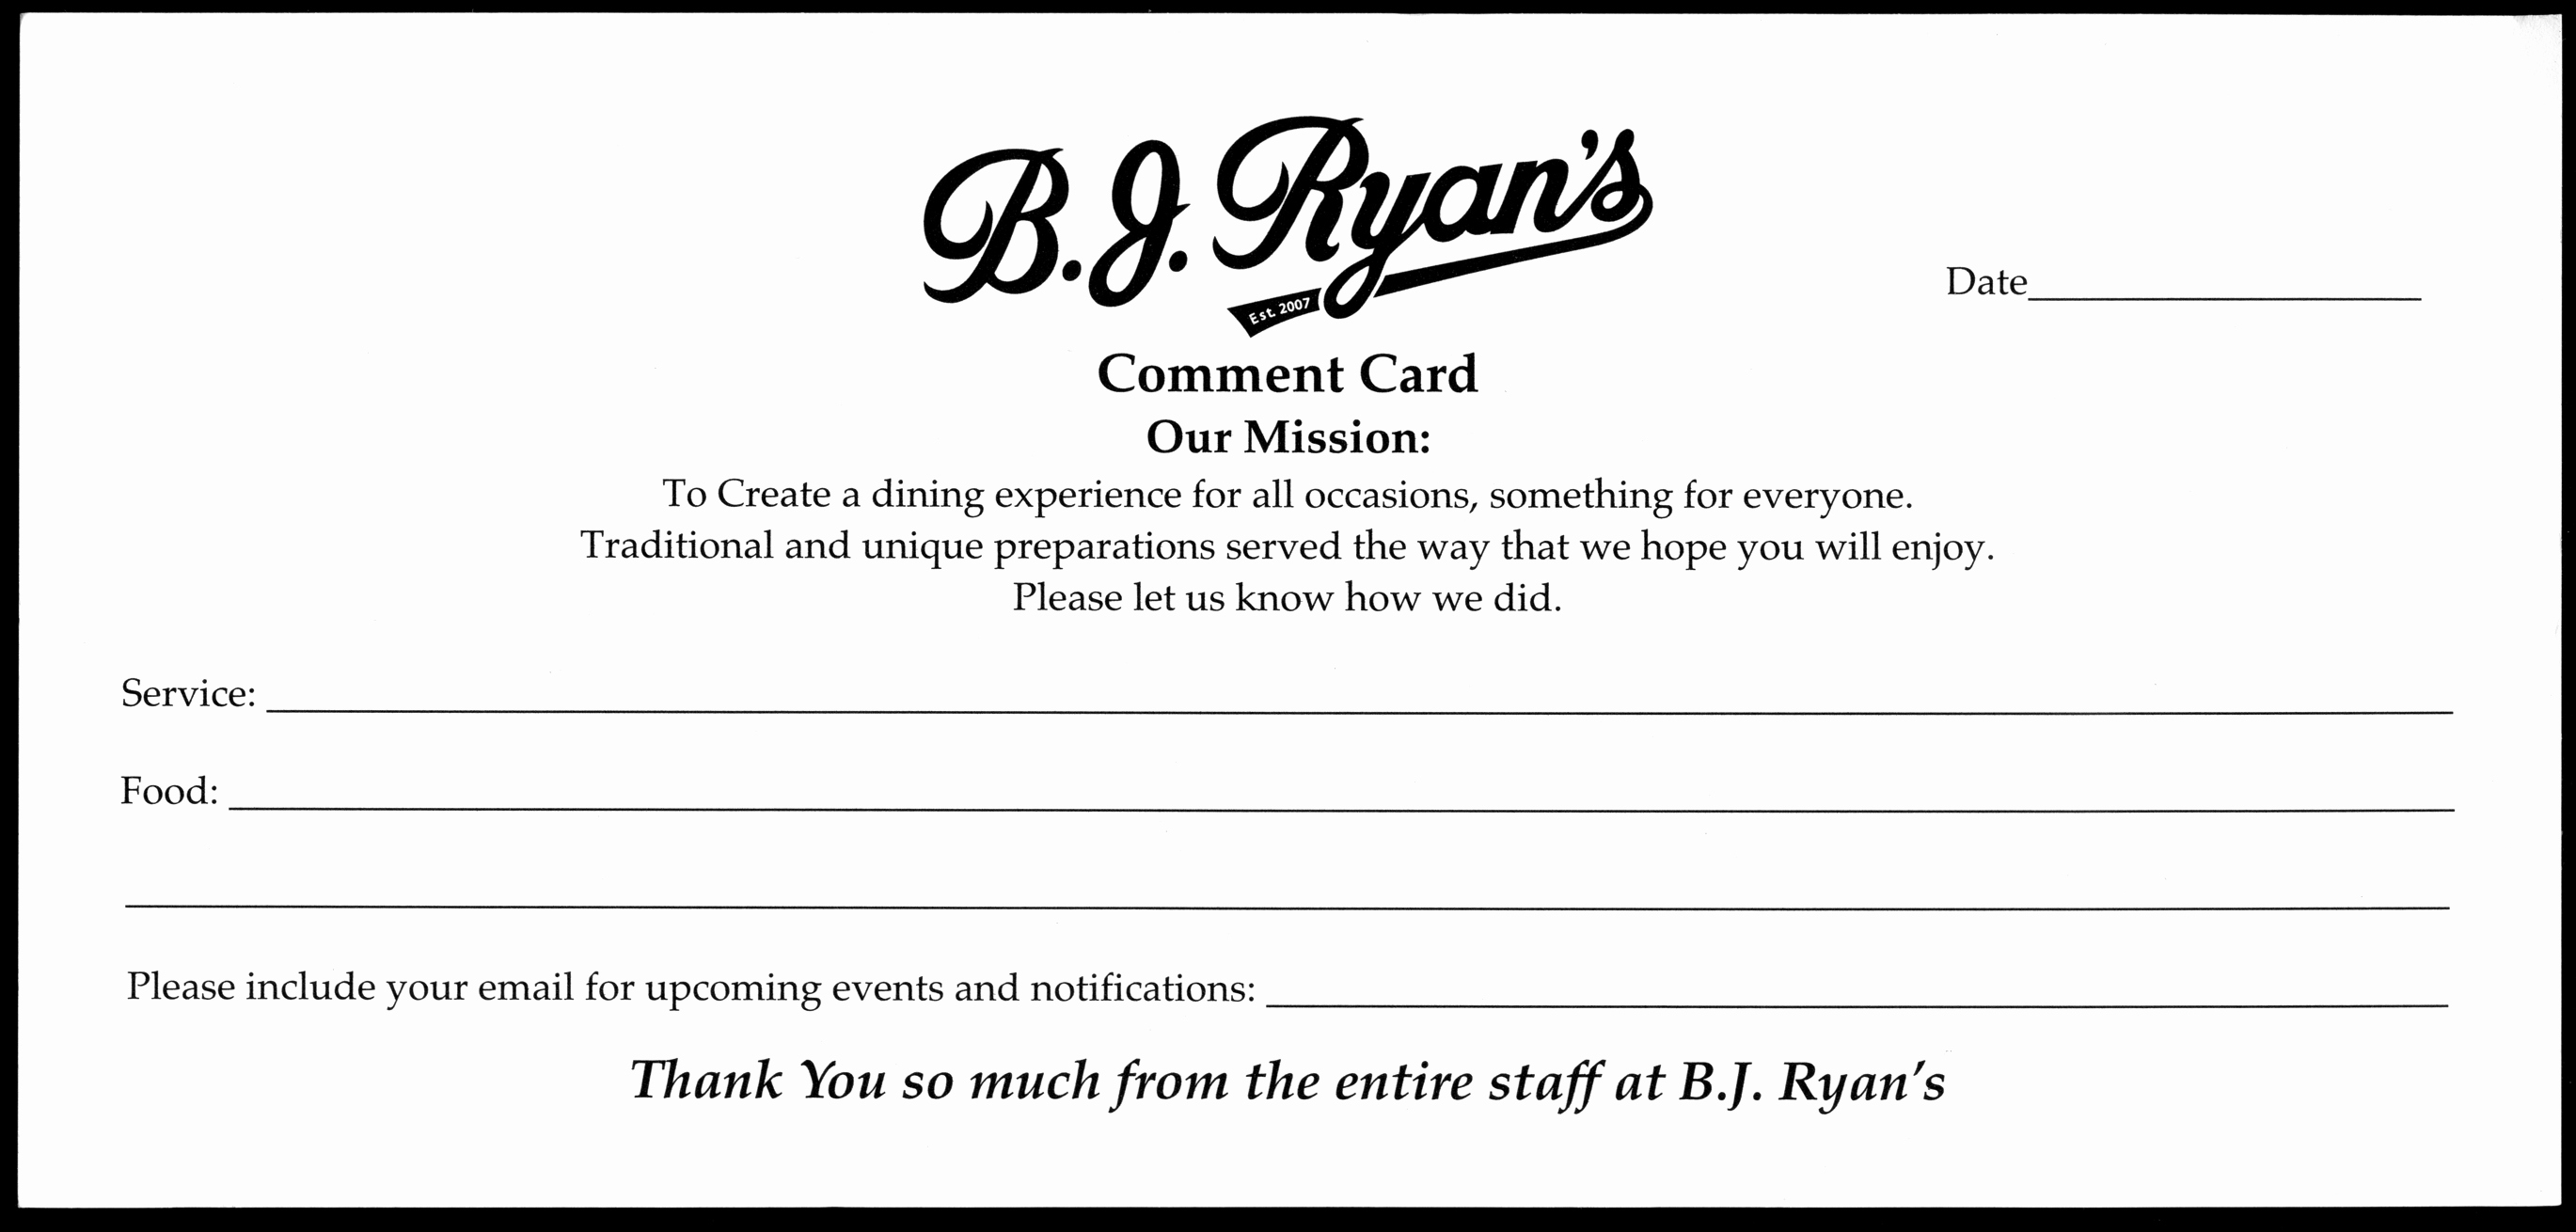 Restaurant Comment Cards Template New 1000 Images About Ment Card On Pinterest